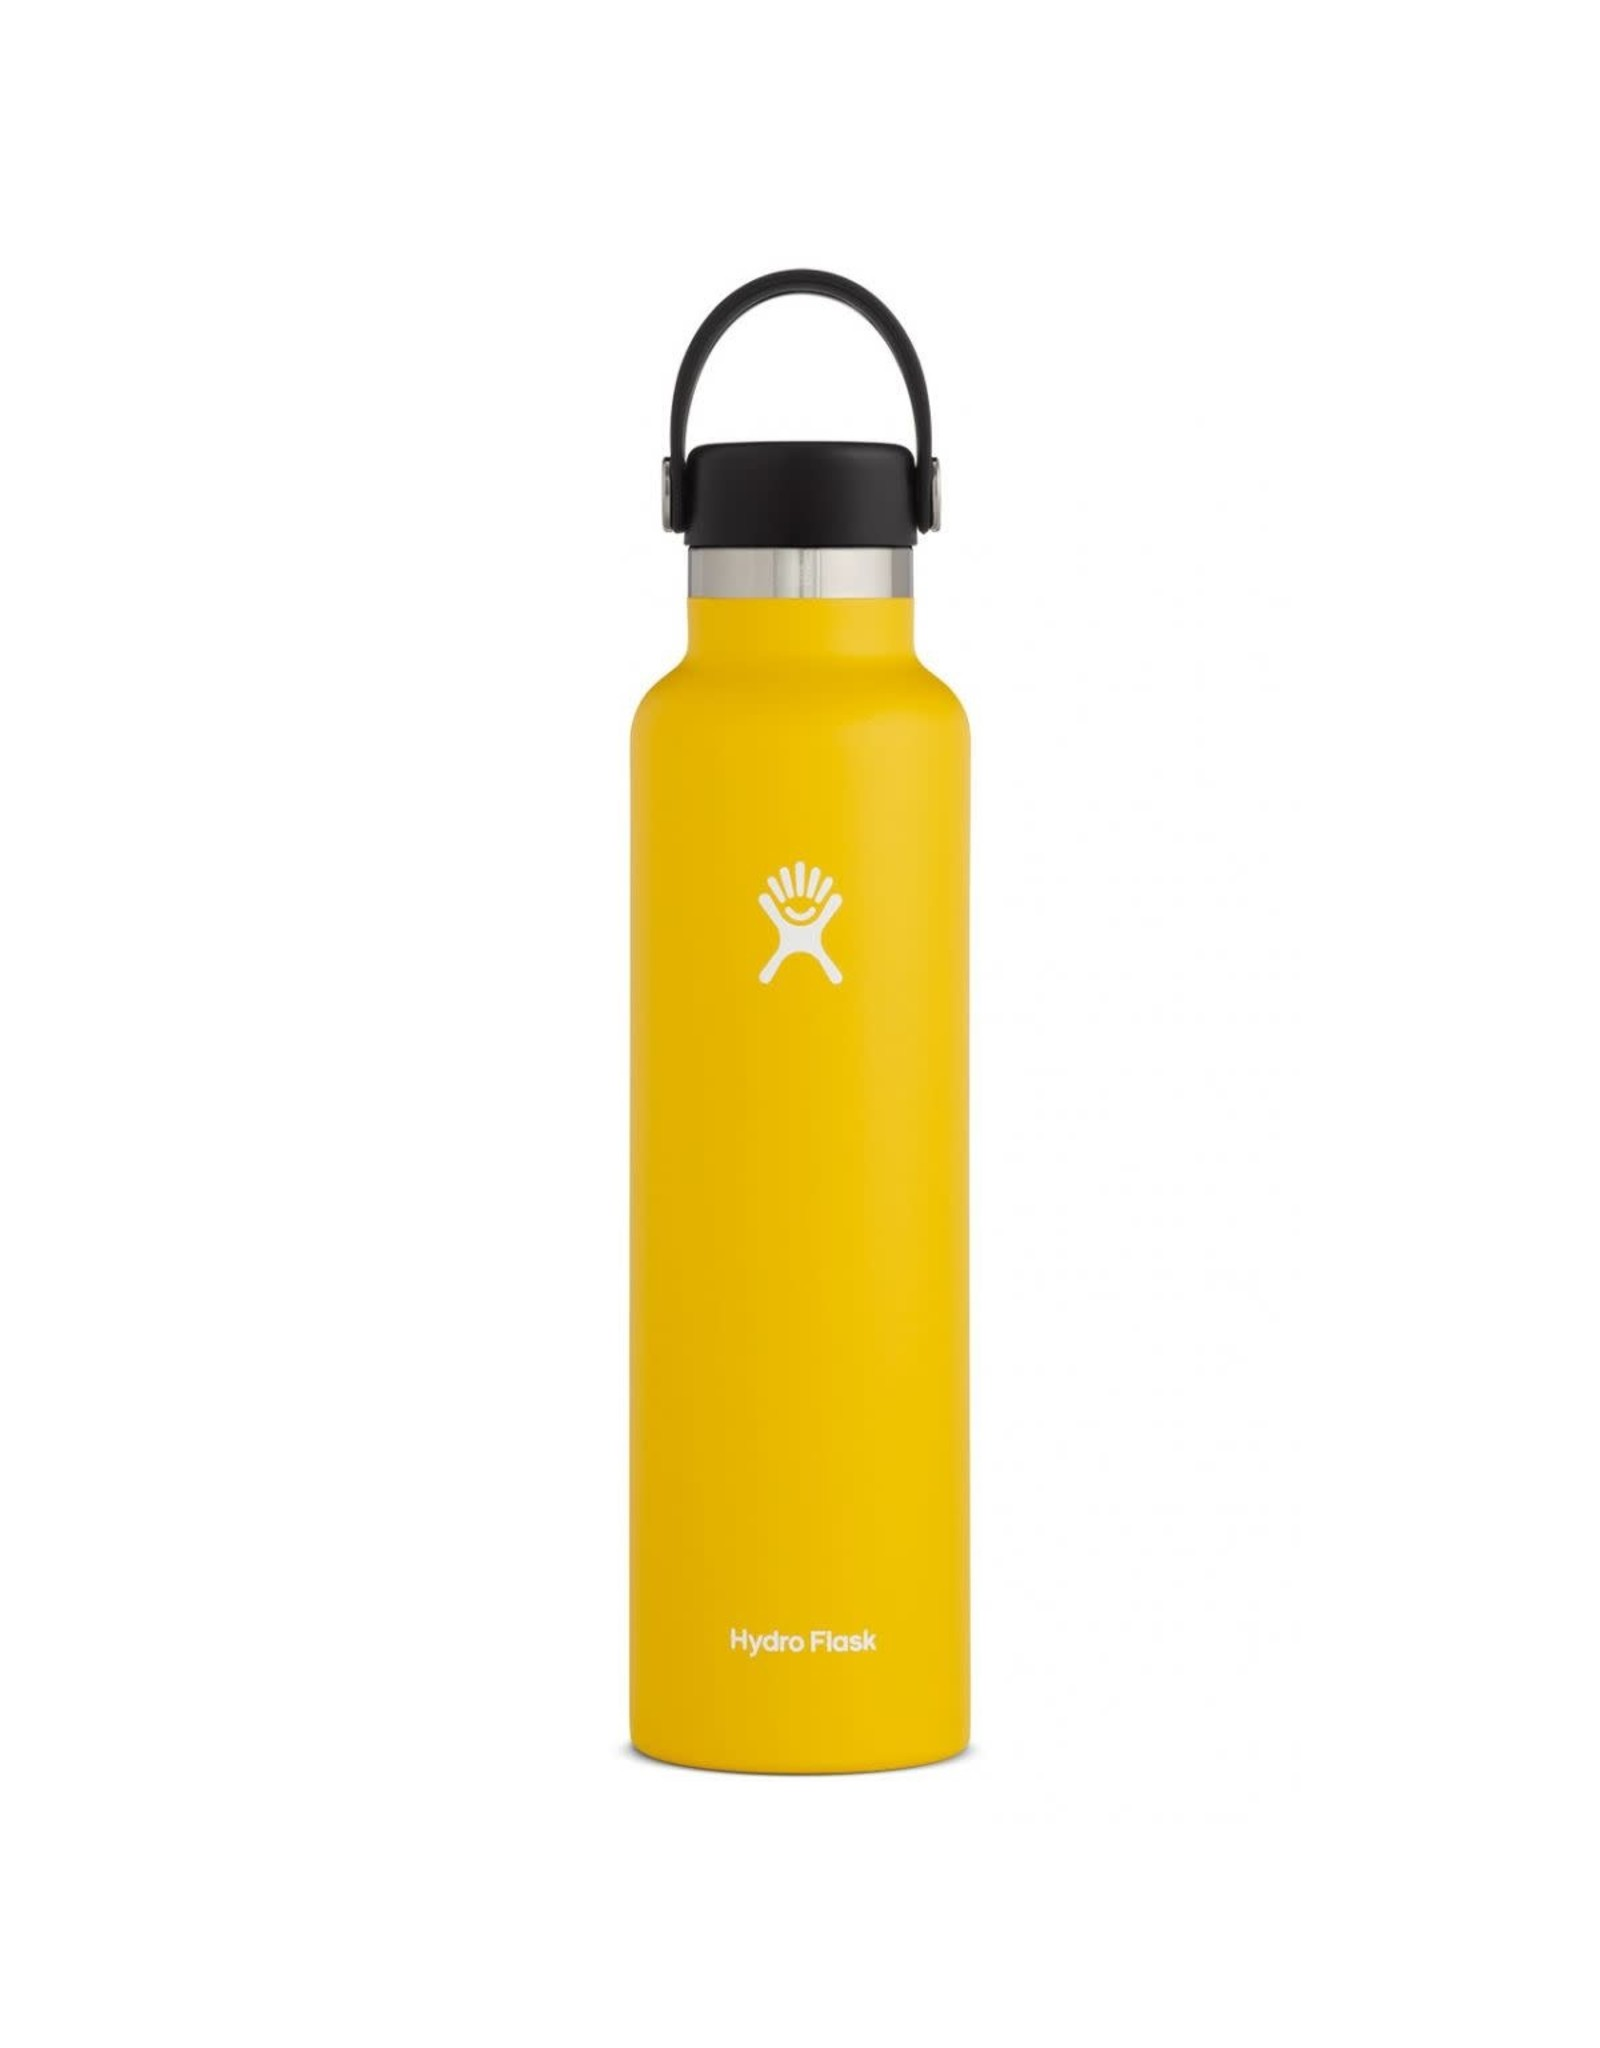 Hydro Flask Hydro Flask 24oz Standard Mouth with Flex Cap Sunflower